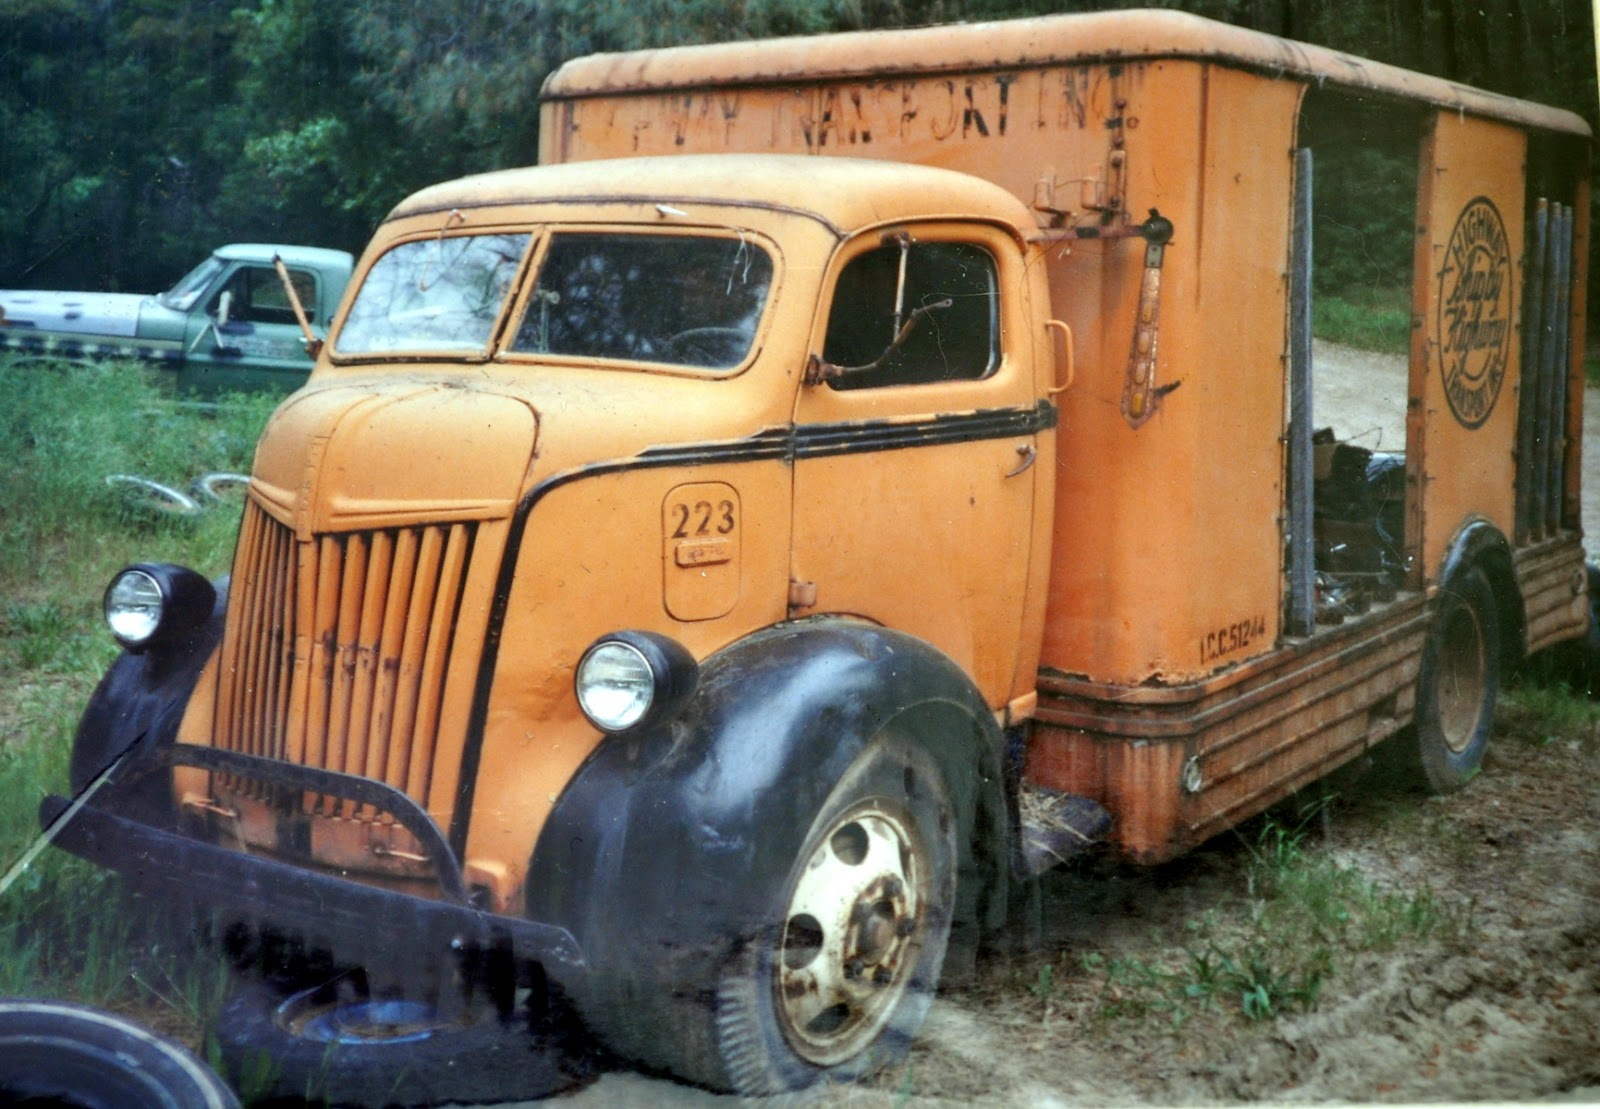 Most Impressive Hot Rod Truck And Trailer I Ve Seen In A While The